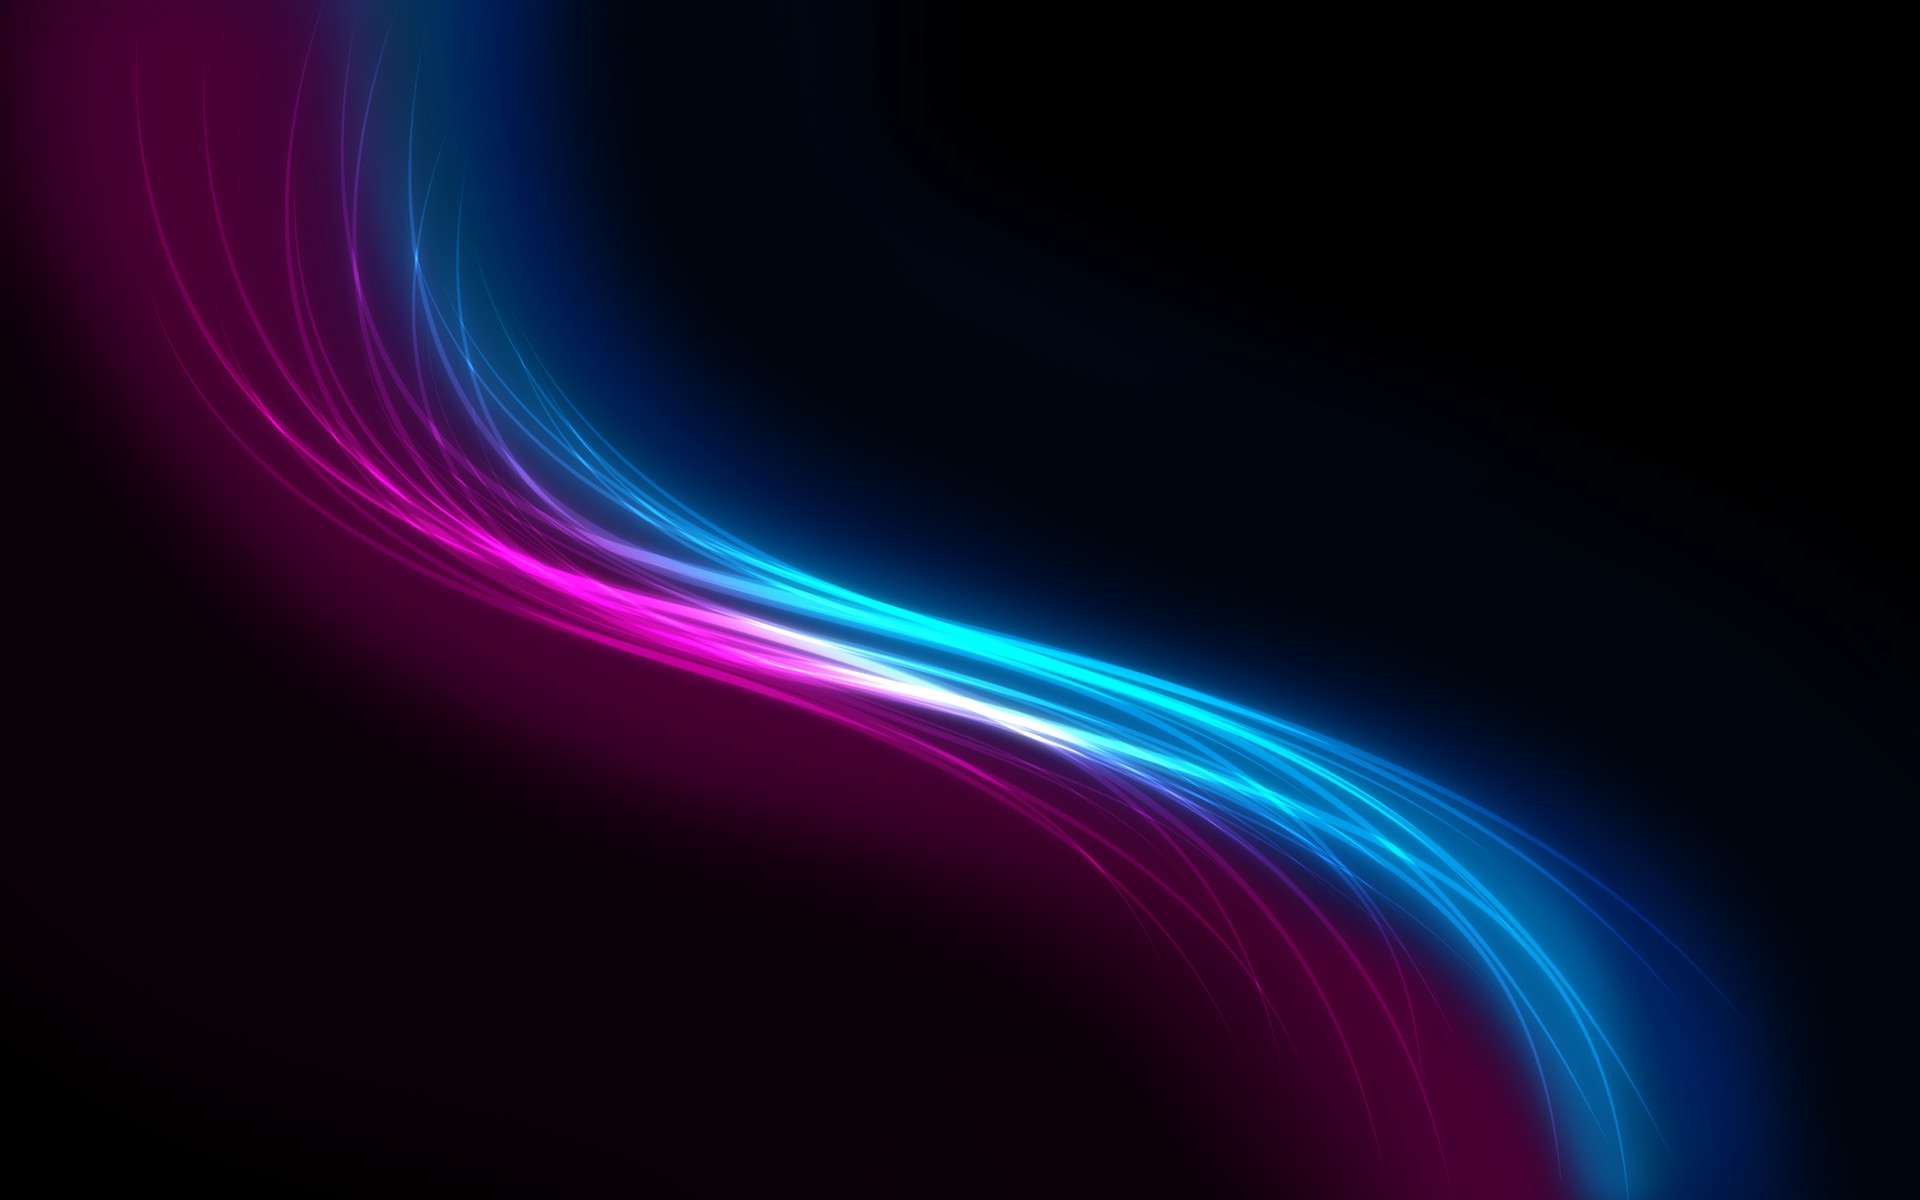 1920x1200 Abstract Designs | 13 Quality Abstract Backgrounds, Patterns For WebDesign